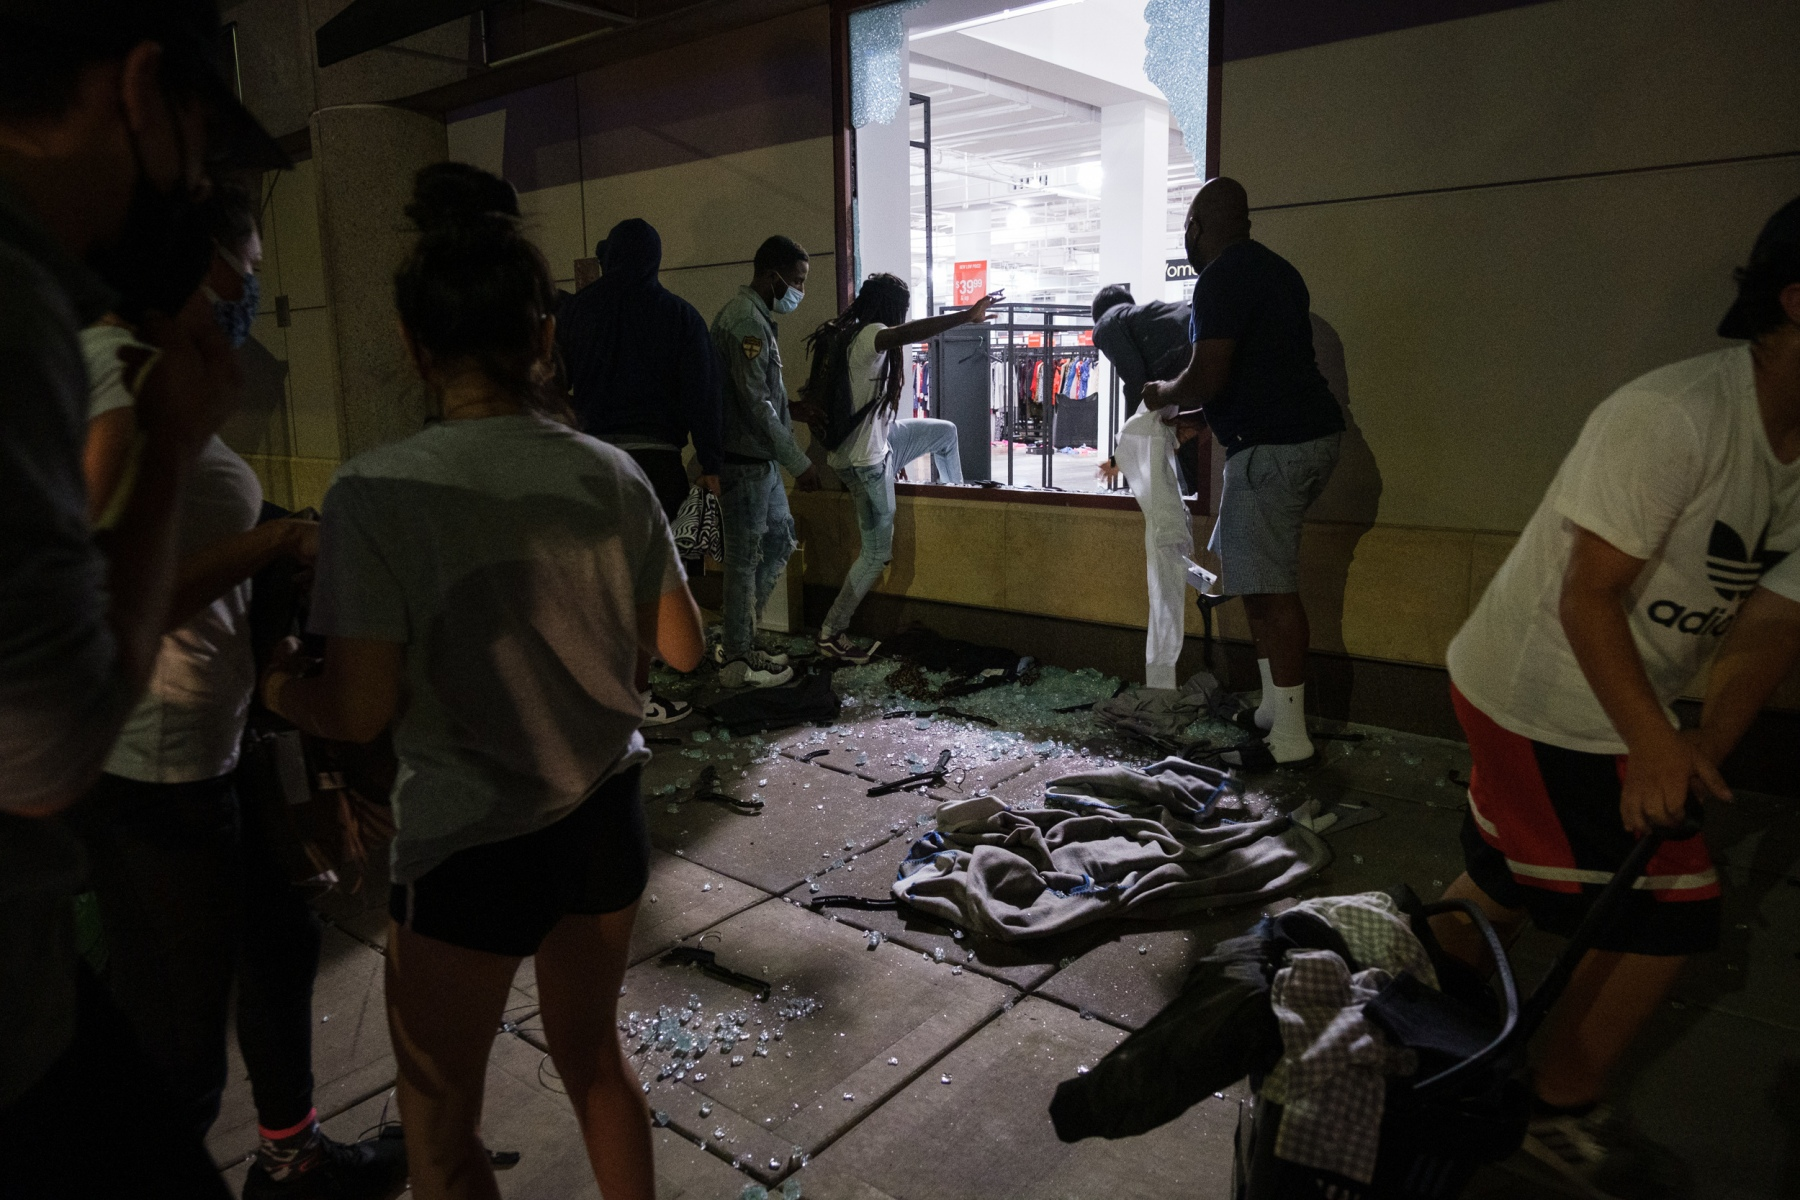 As night falls, looting continues to spread across the Nicollet Mall area of Minneapolis. People break into a clothing store along Nicollet Avenue on August 26, 2020.